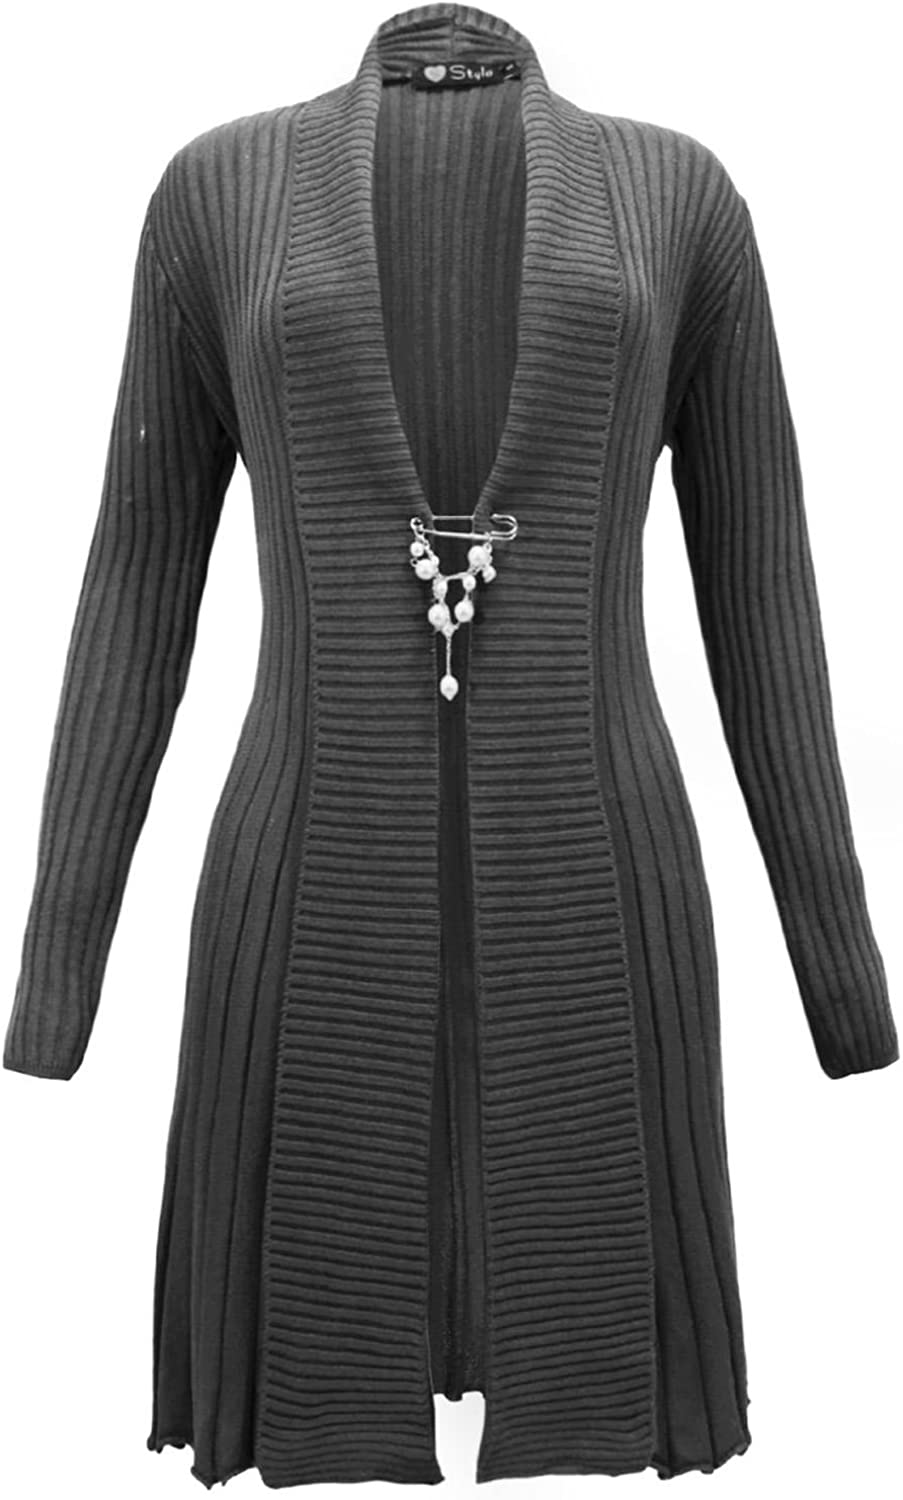 TOP VENDOR Ladies Womens Knitted Boyfriend Cardigan Open Front Brooch Waterfall Dress TOP Pluse Size S M L XL 16 18 20 22 24 26 28 30